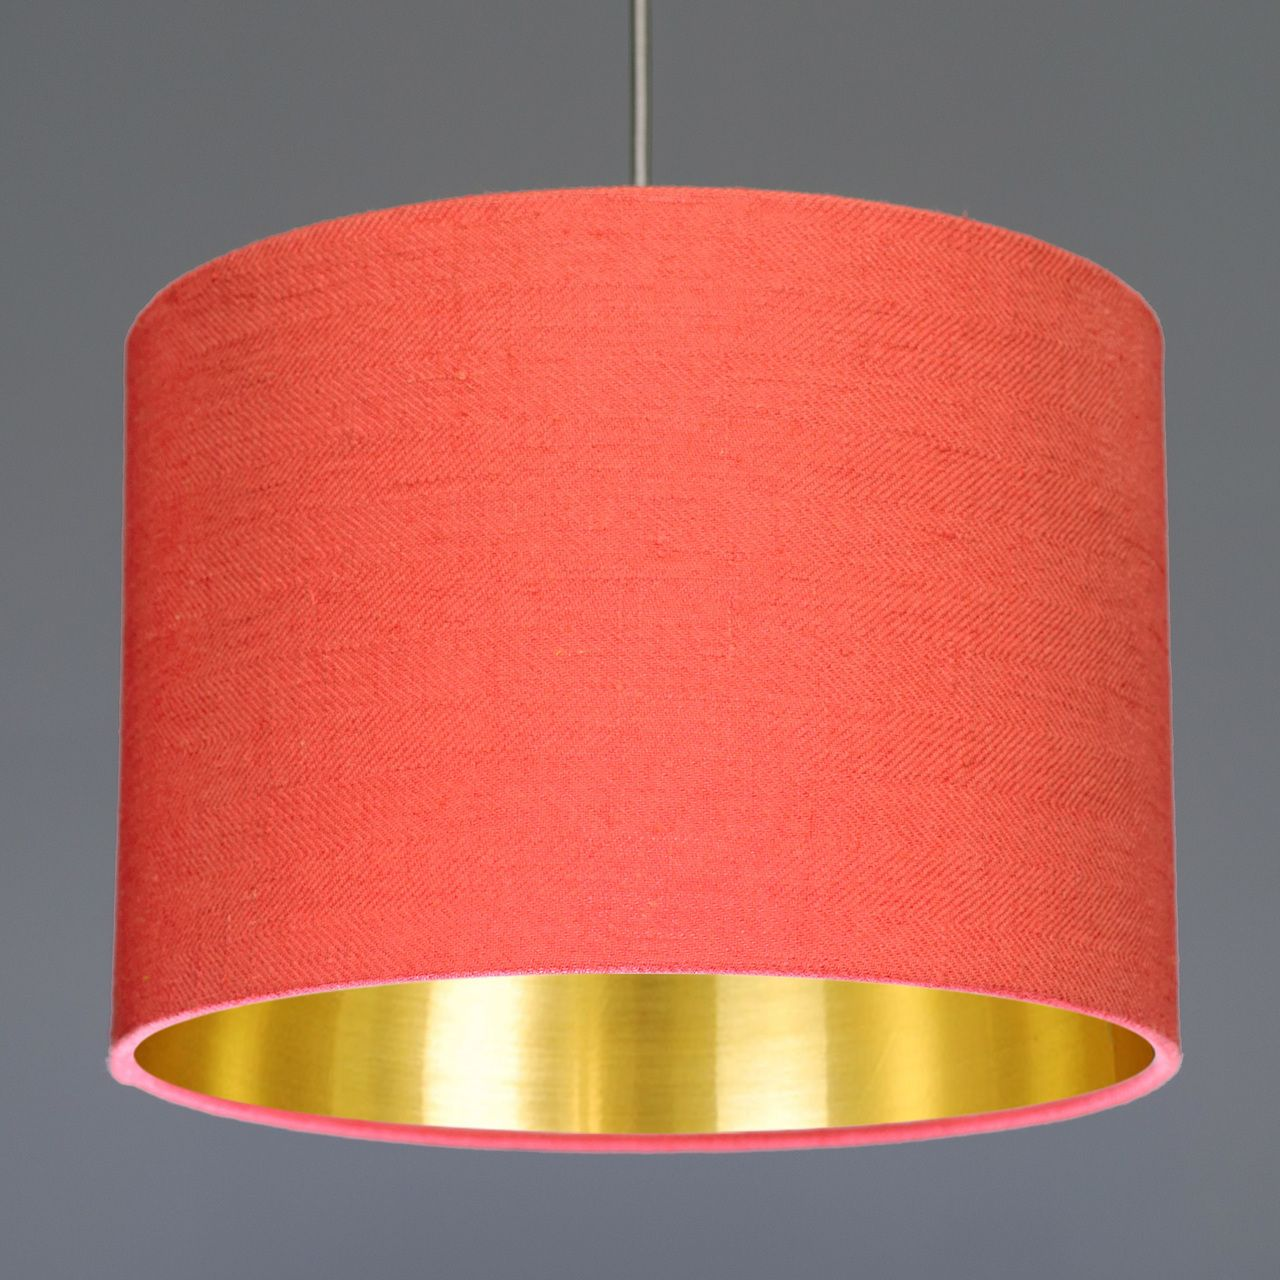 Quirk Ltd Coral Washed Linen Drum Lamp Shade With Choice Of